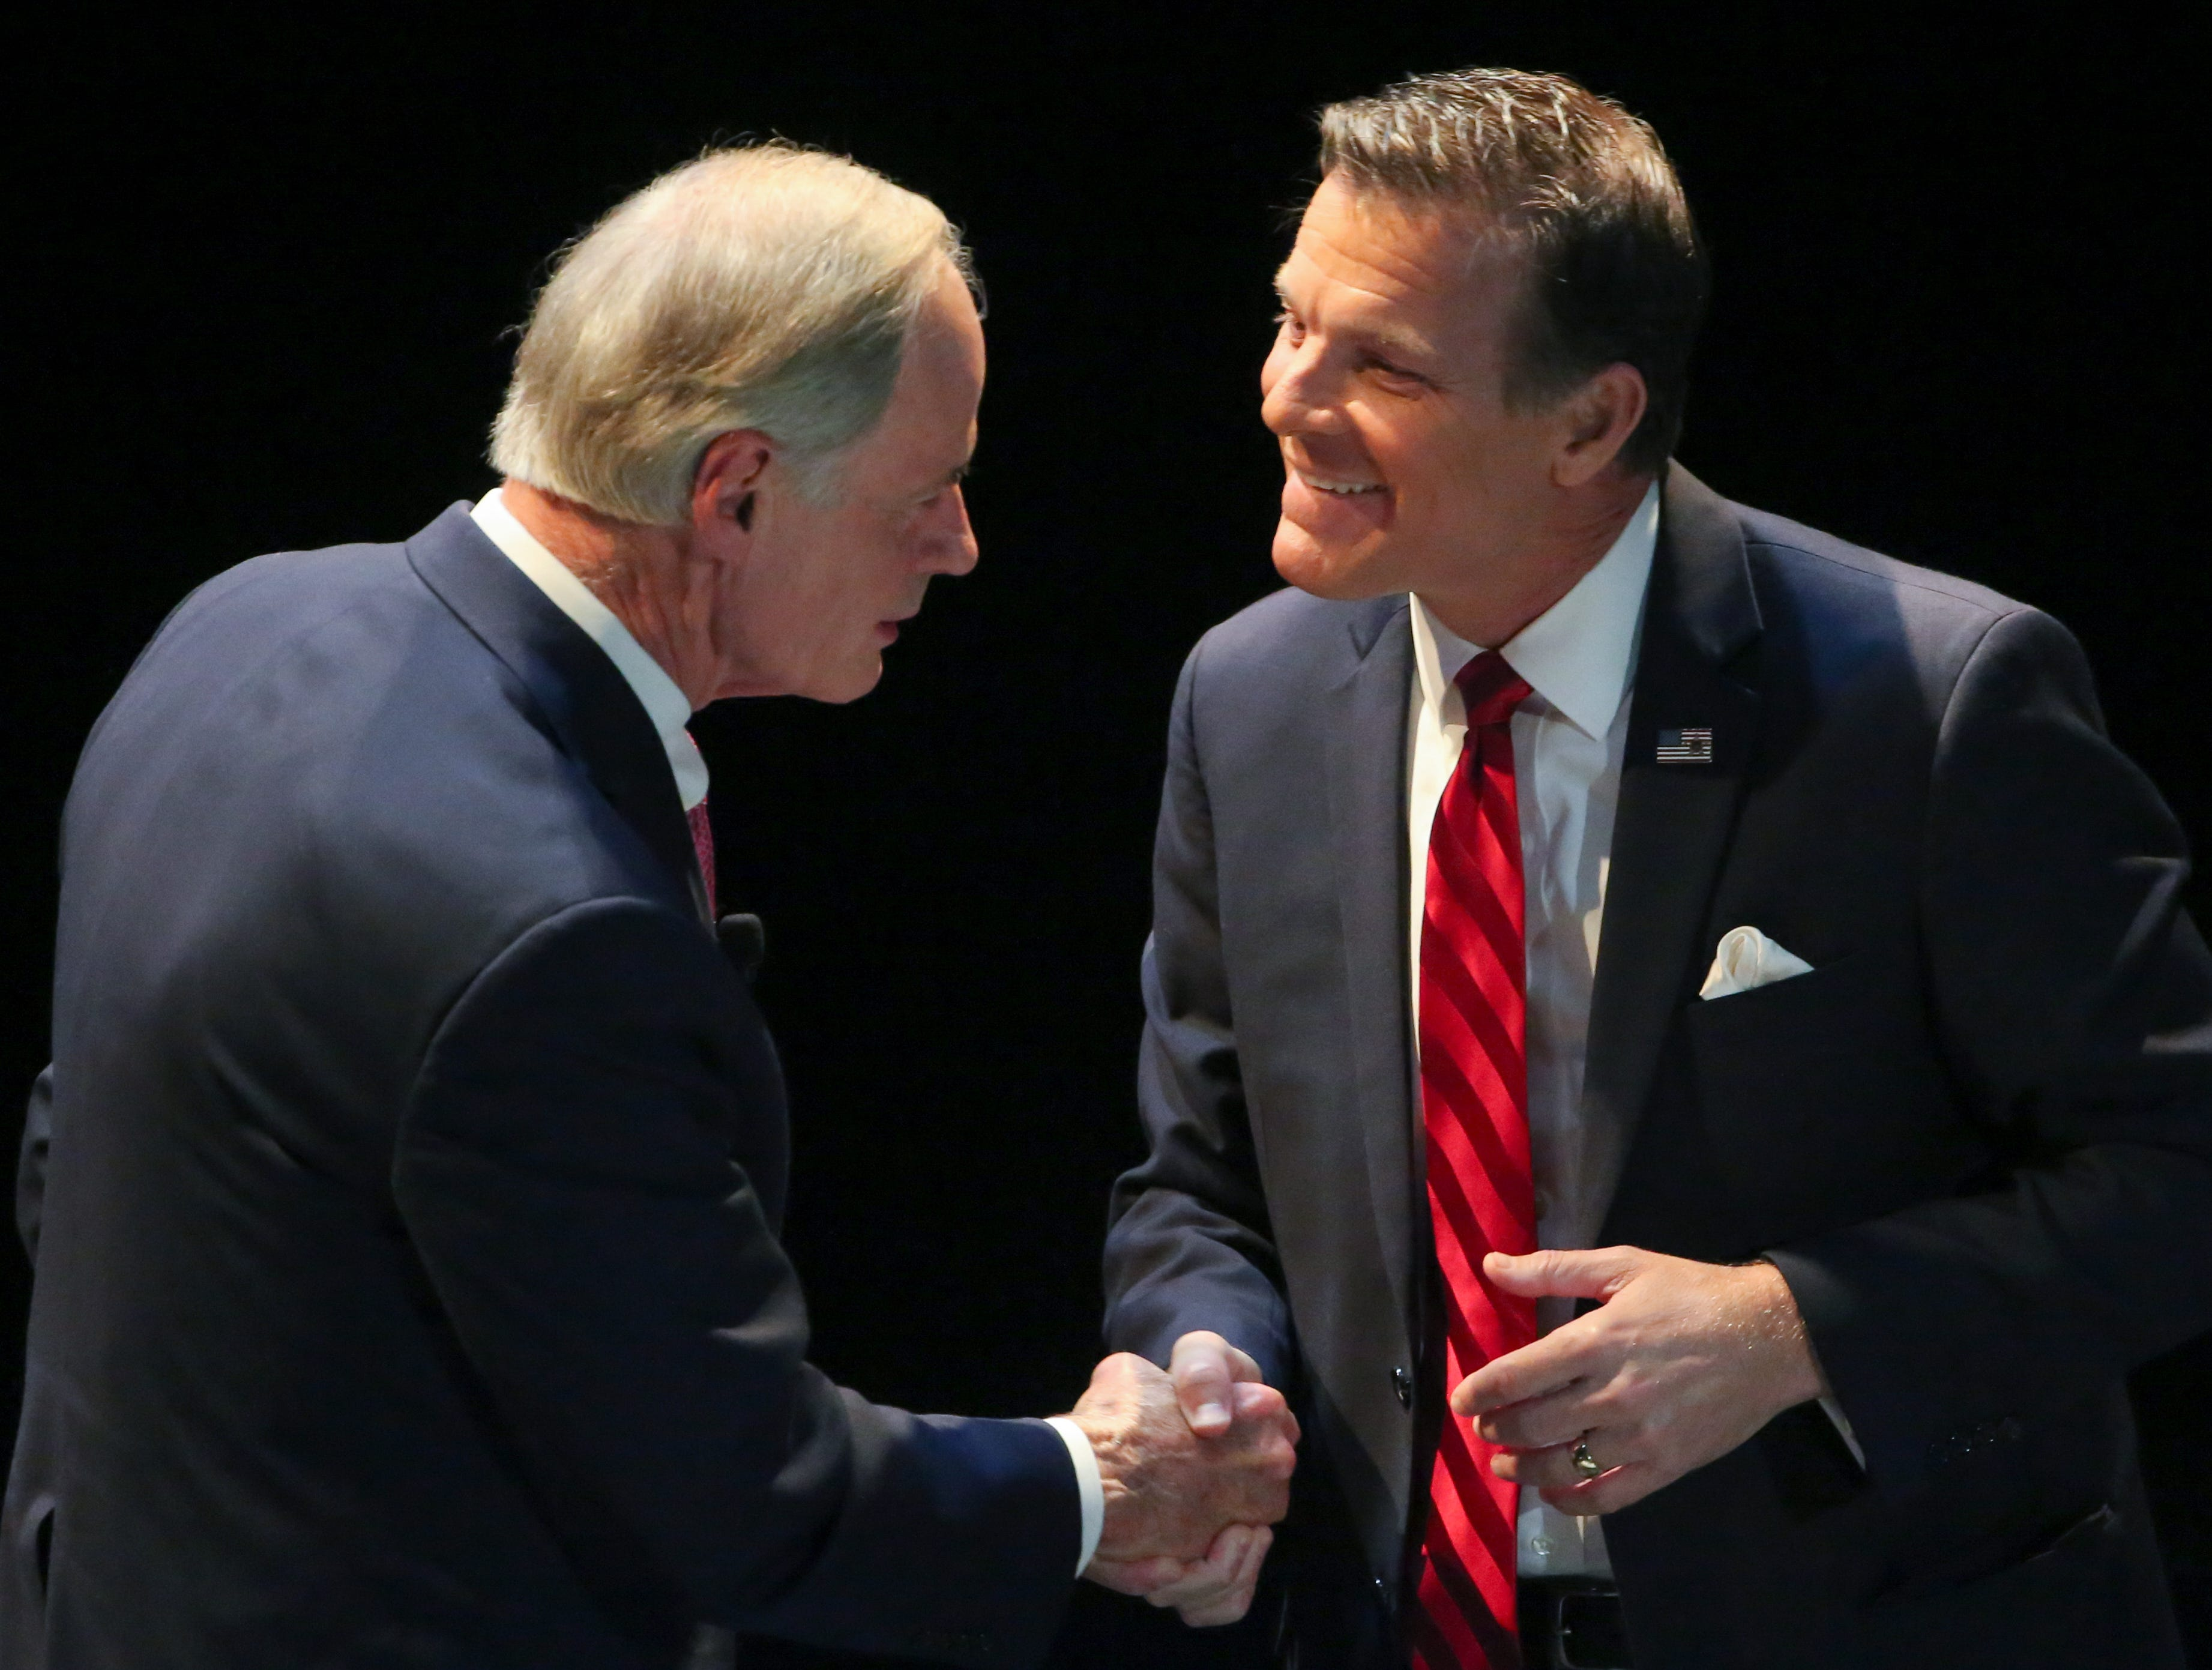 US Senate candidates from Delaware Democrat incumbent Tom Carper (left) and Republican challenger Rob Arlett meet after a debate at the University of Delaware's Mitchell Hall Wednesday.